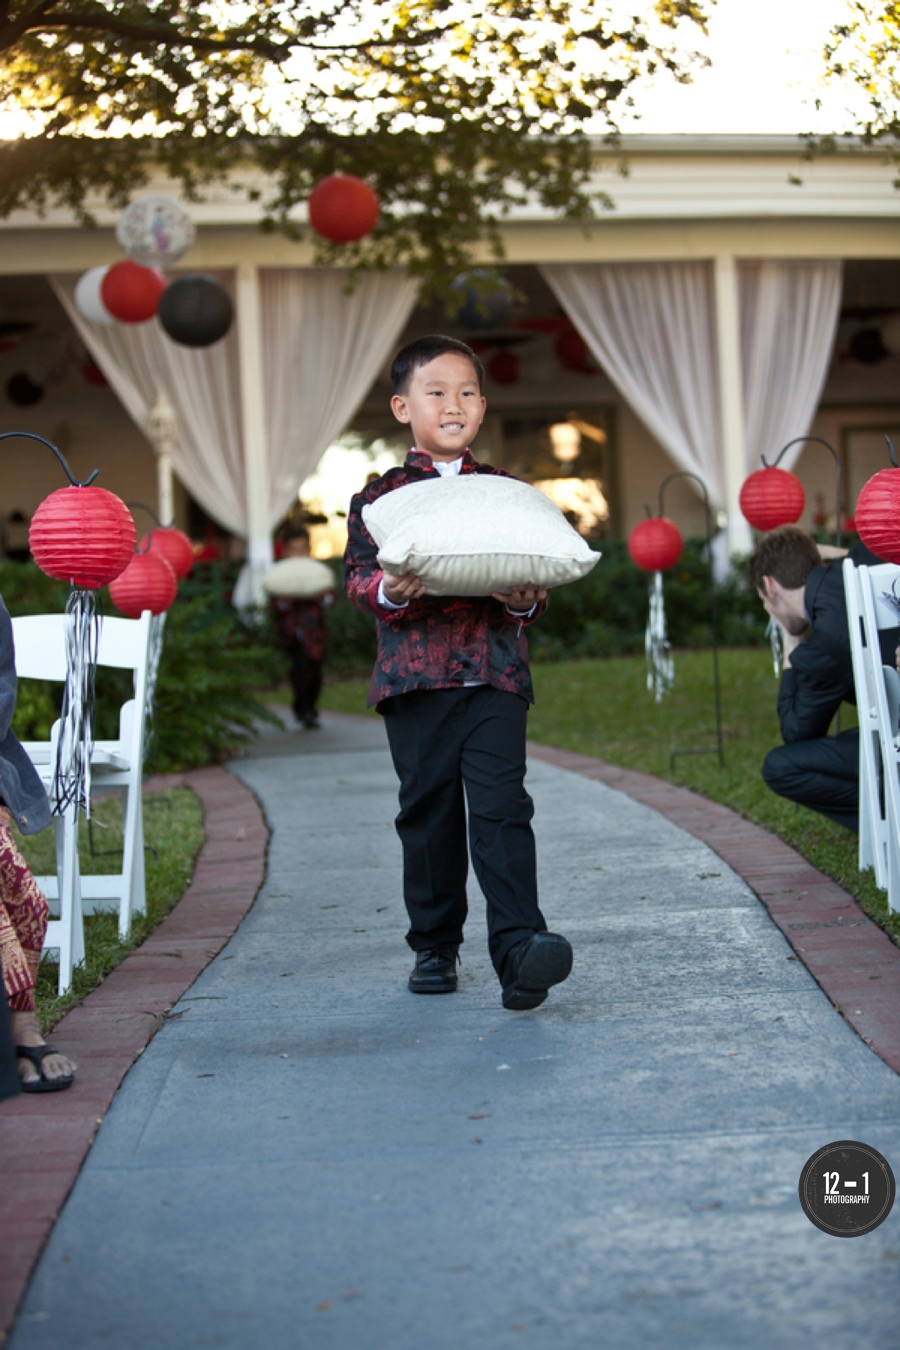 Paper lanterns (that matched with the adorable ring bearers) were strung from oak trees overhead and hung from shepherds hooks along the ceremony aisle.